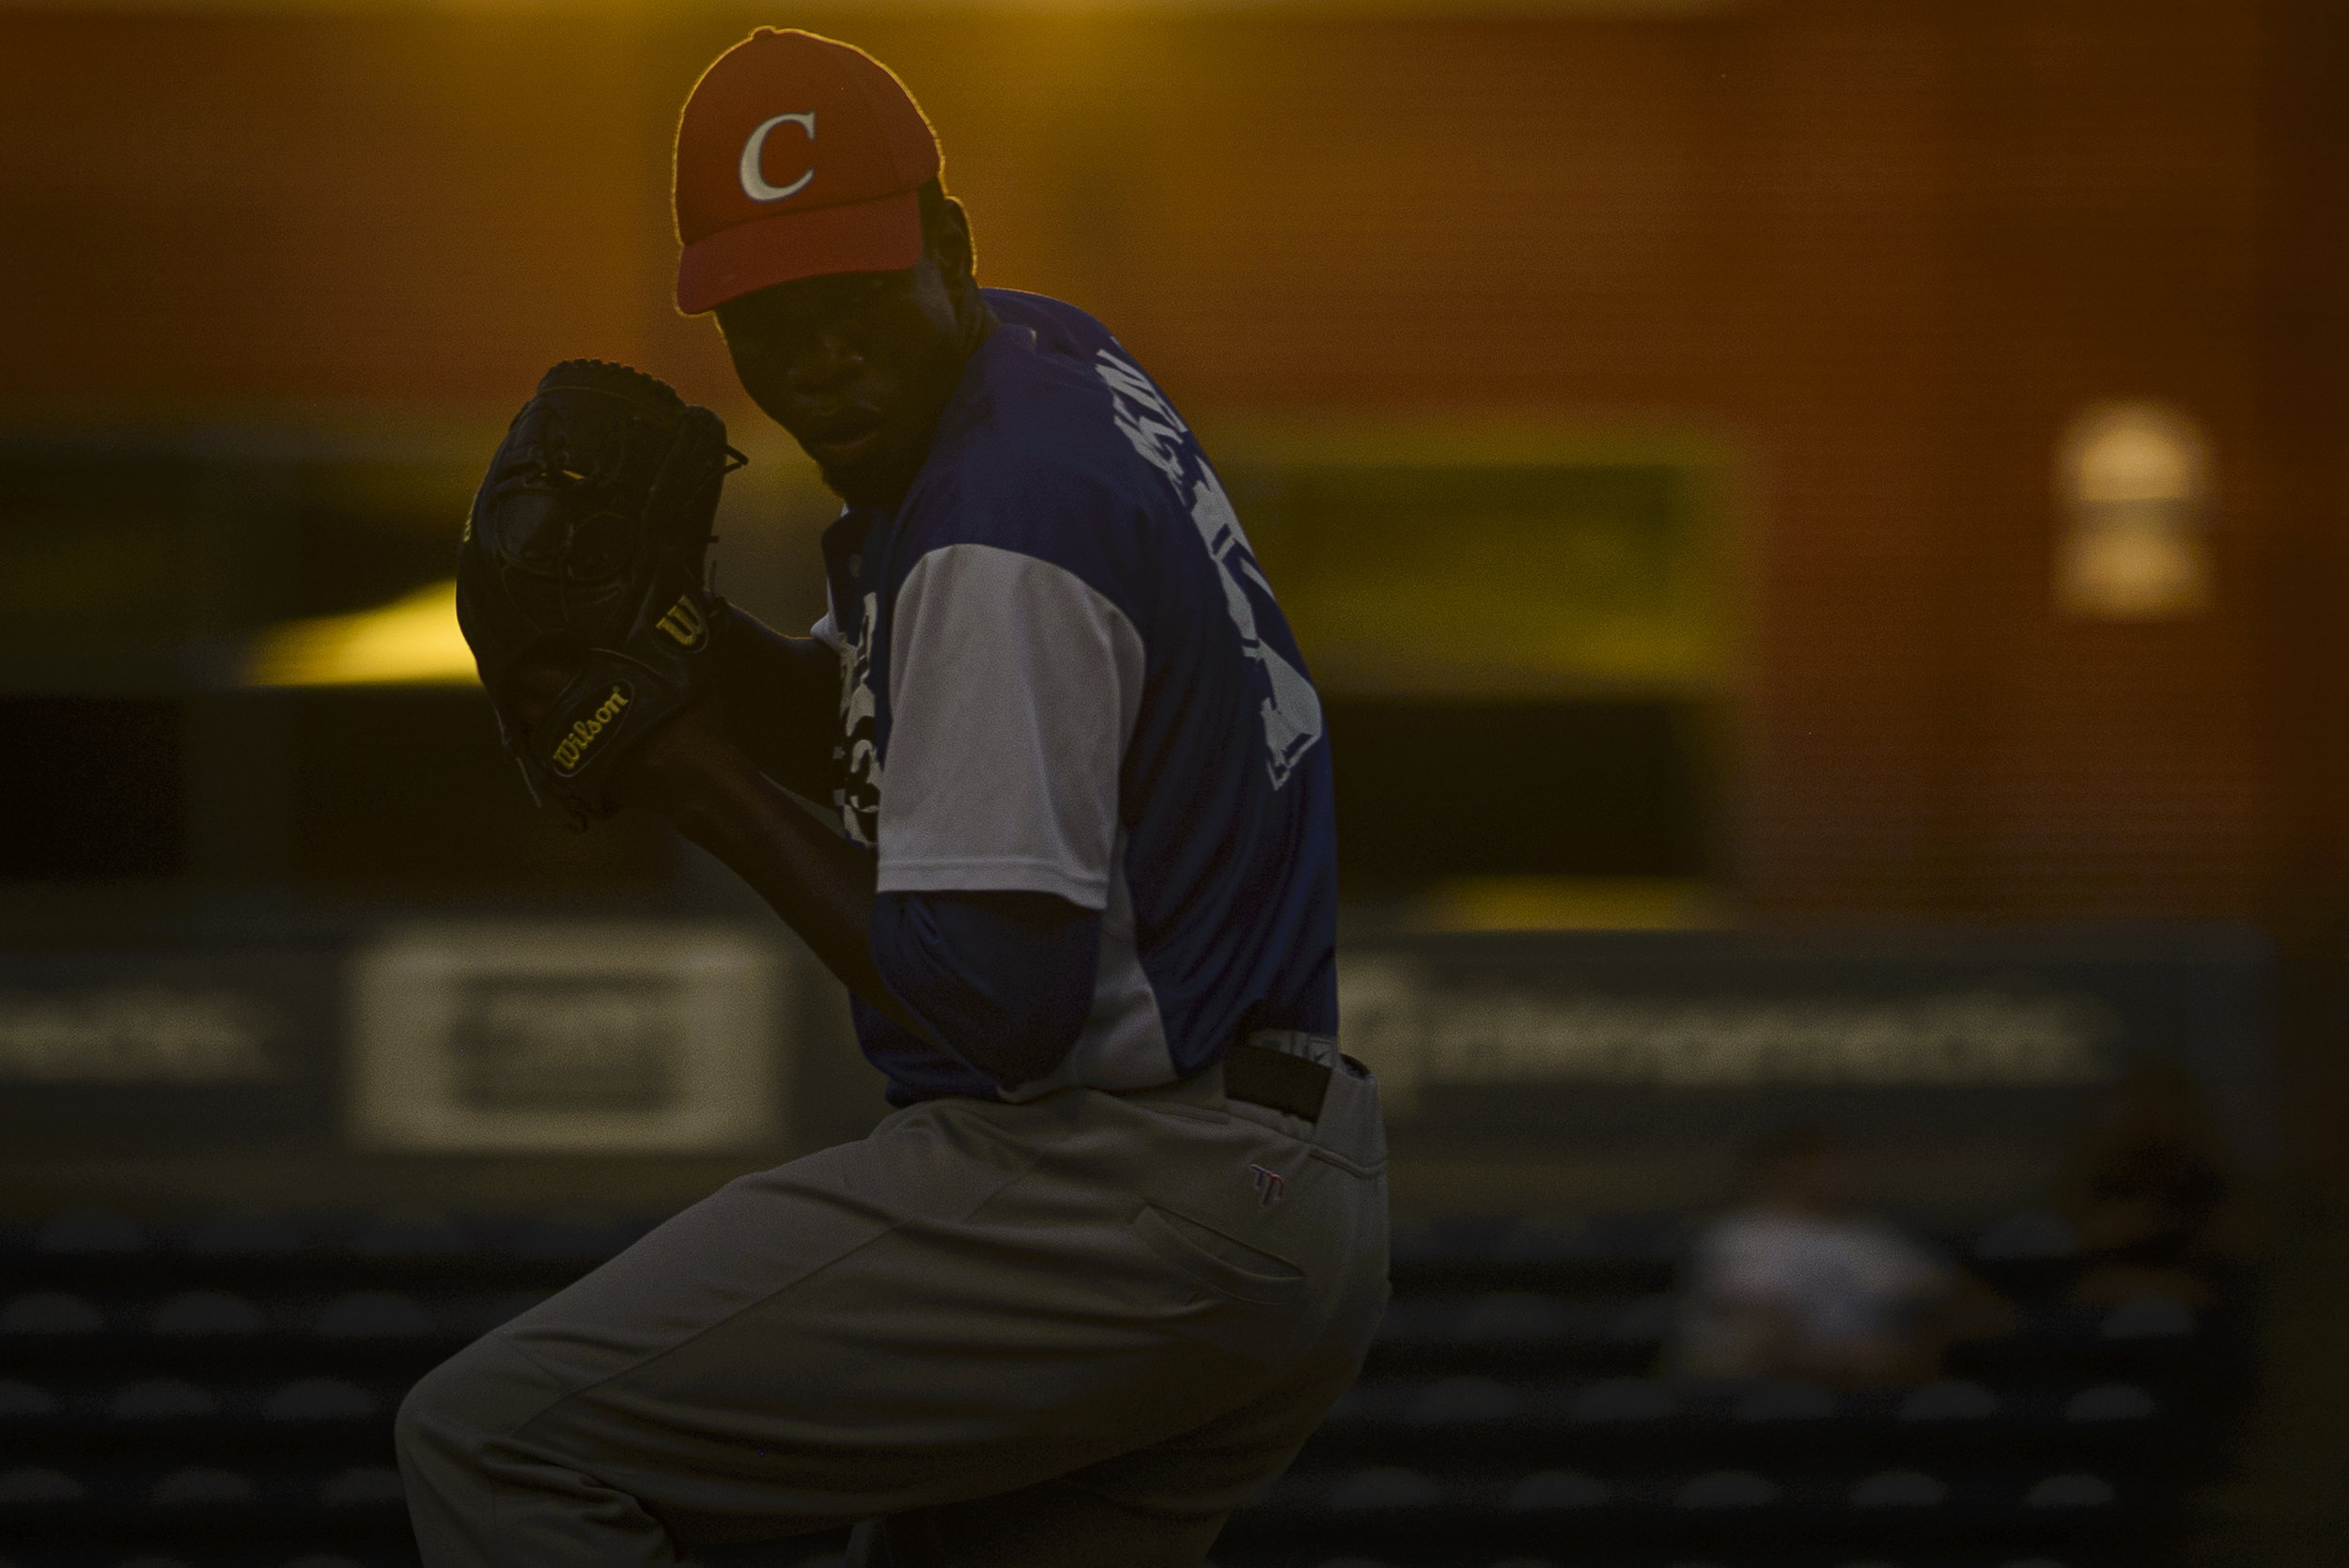 Cuban pitcher Frank Medina faces the USA Collegiate National team on July 6, 2019 at Durham Bulls Athletic Park in Durham, NC.